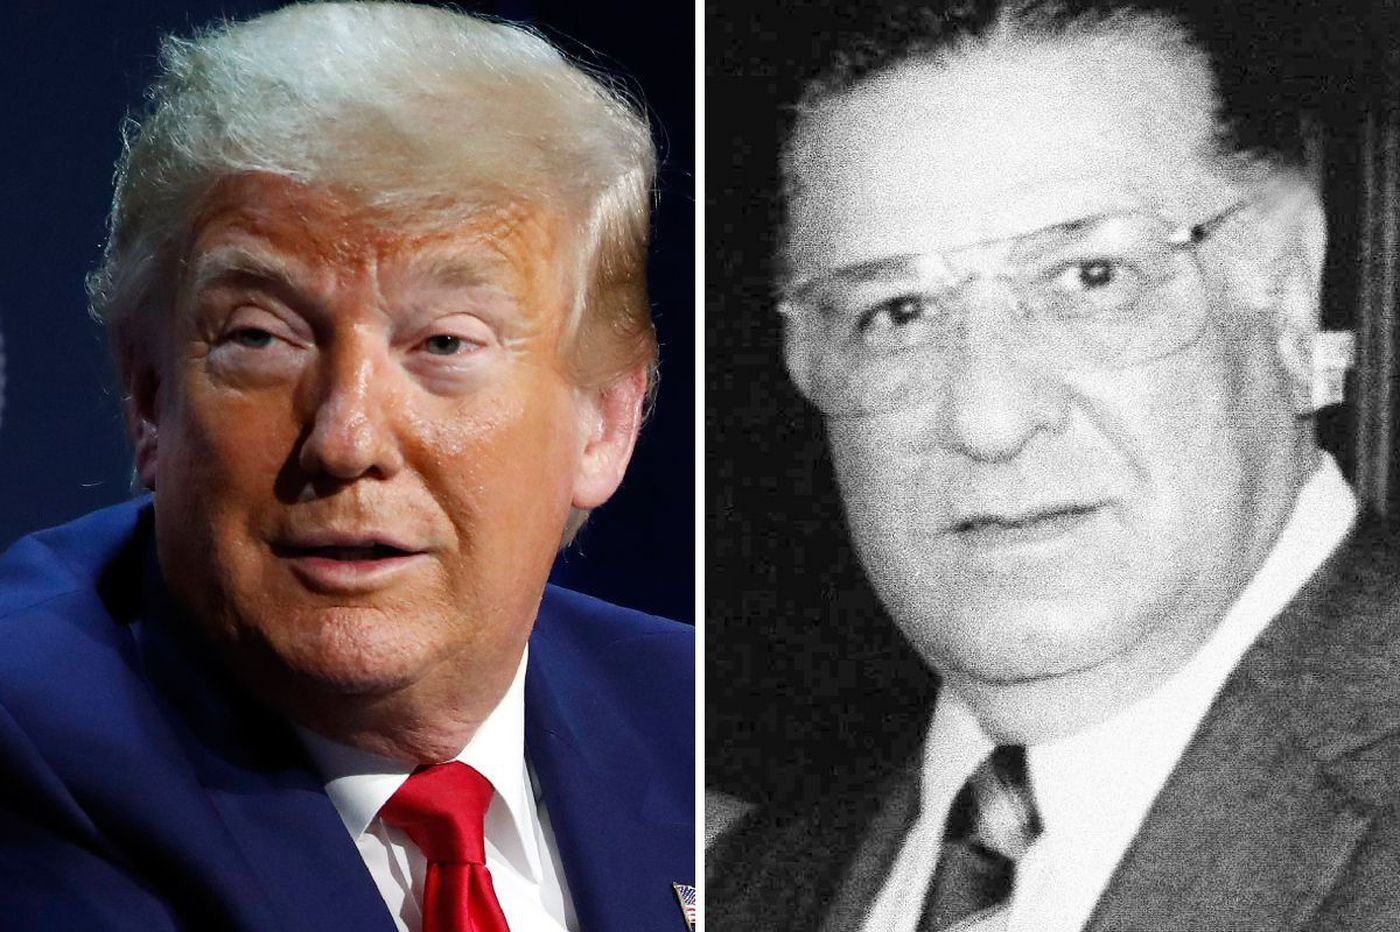 Trump incorrectly cites former Philly mayor Frank Rizzo for racist phrase aimed at protesters